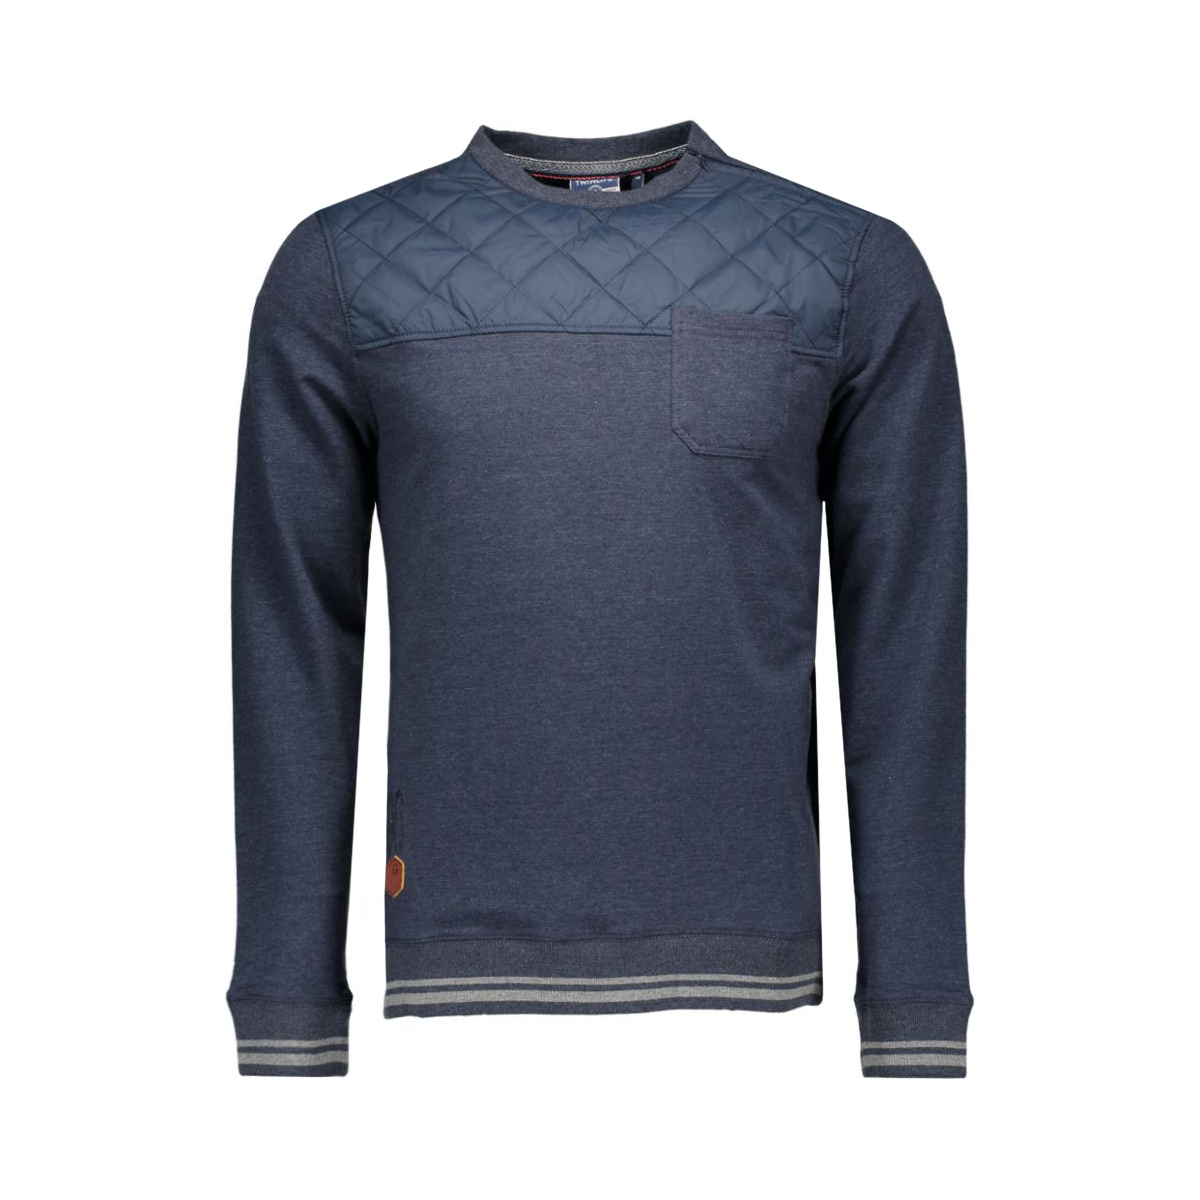 msw651447 twinlife sweater 6991 navy